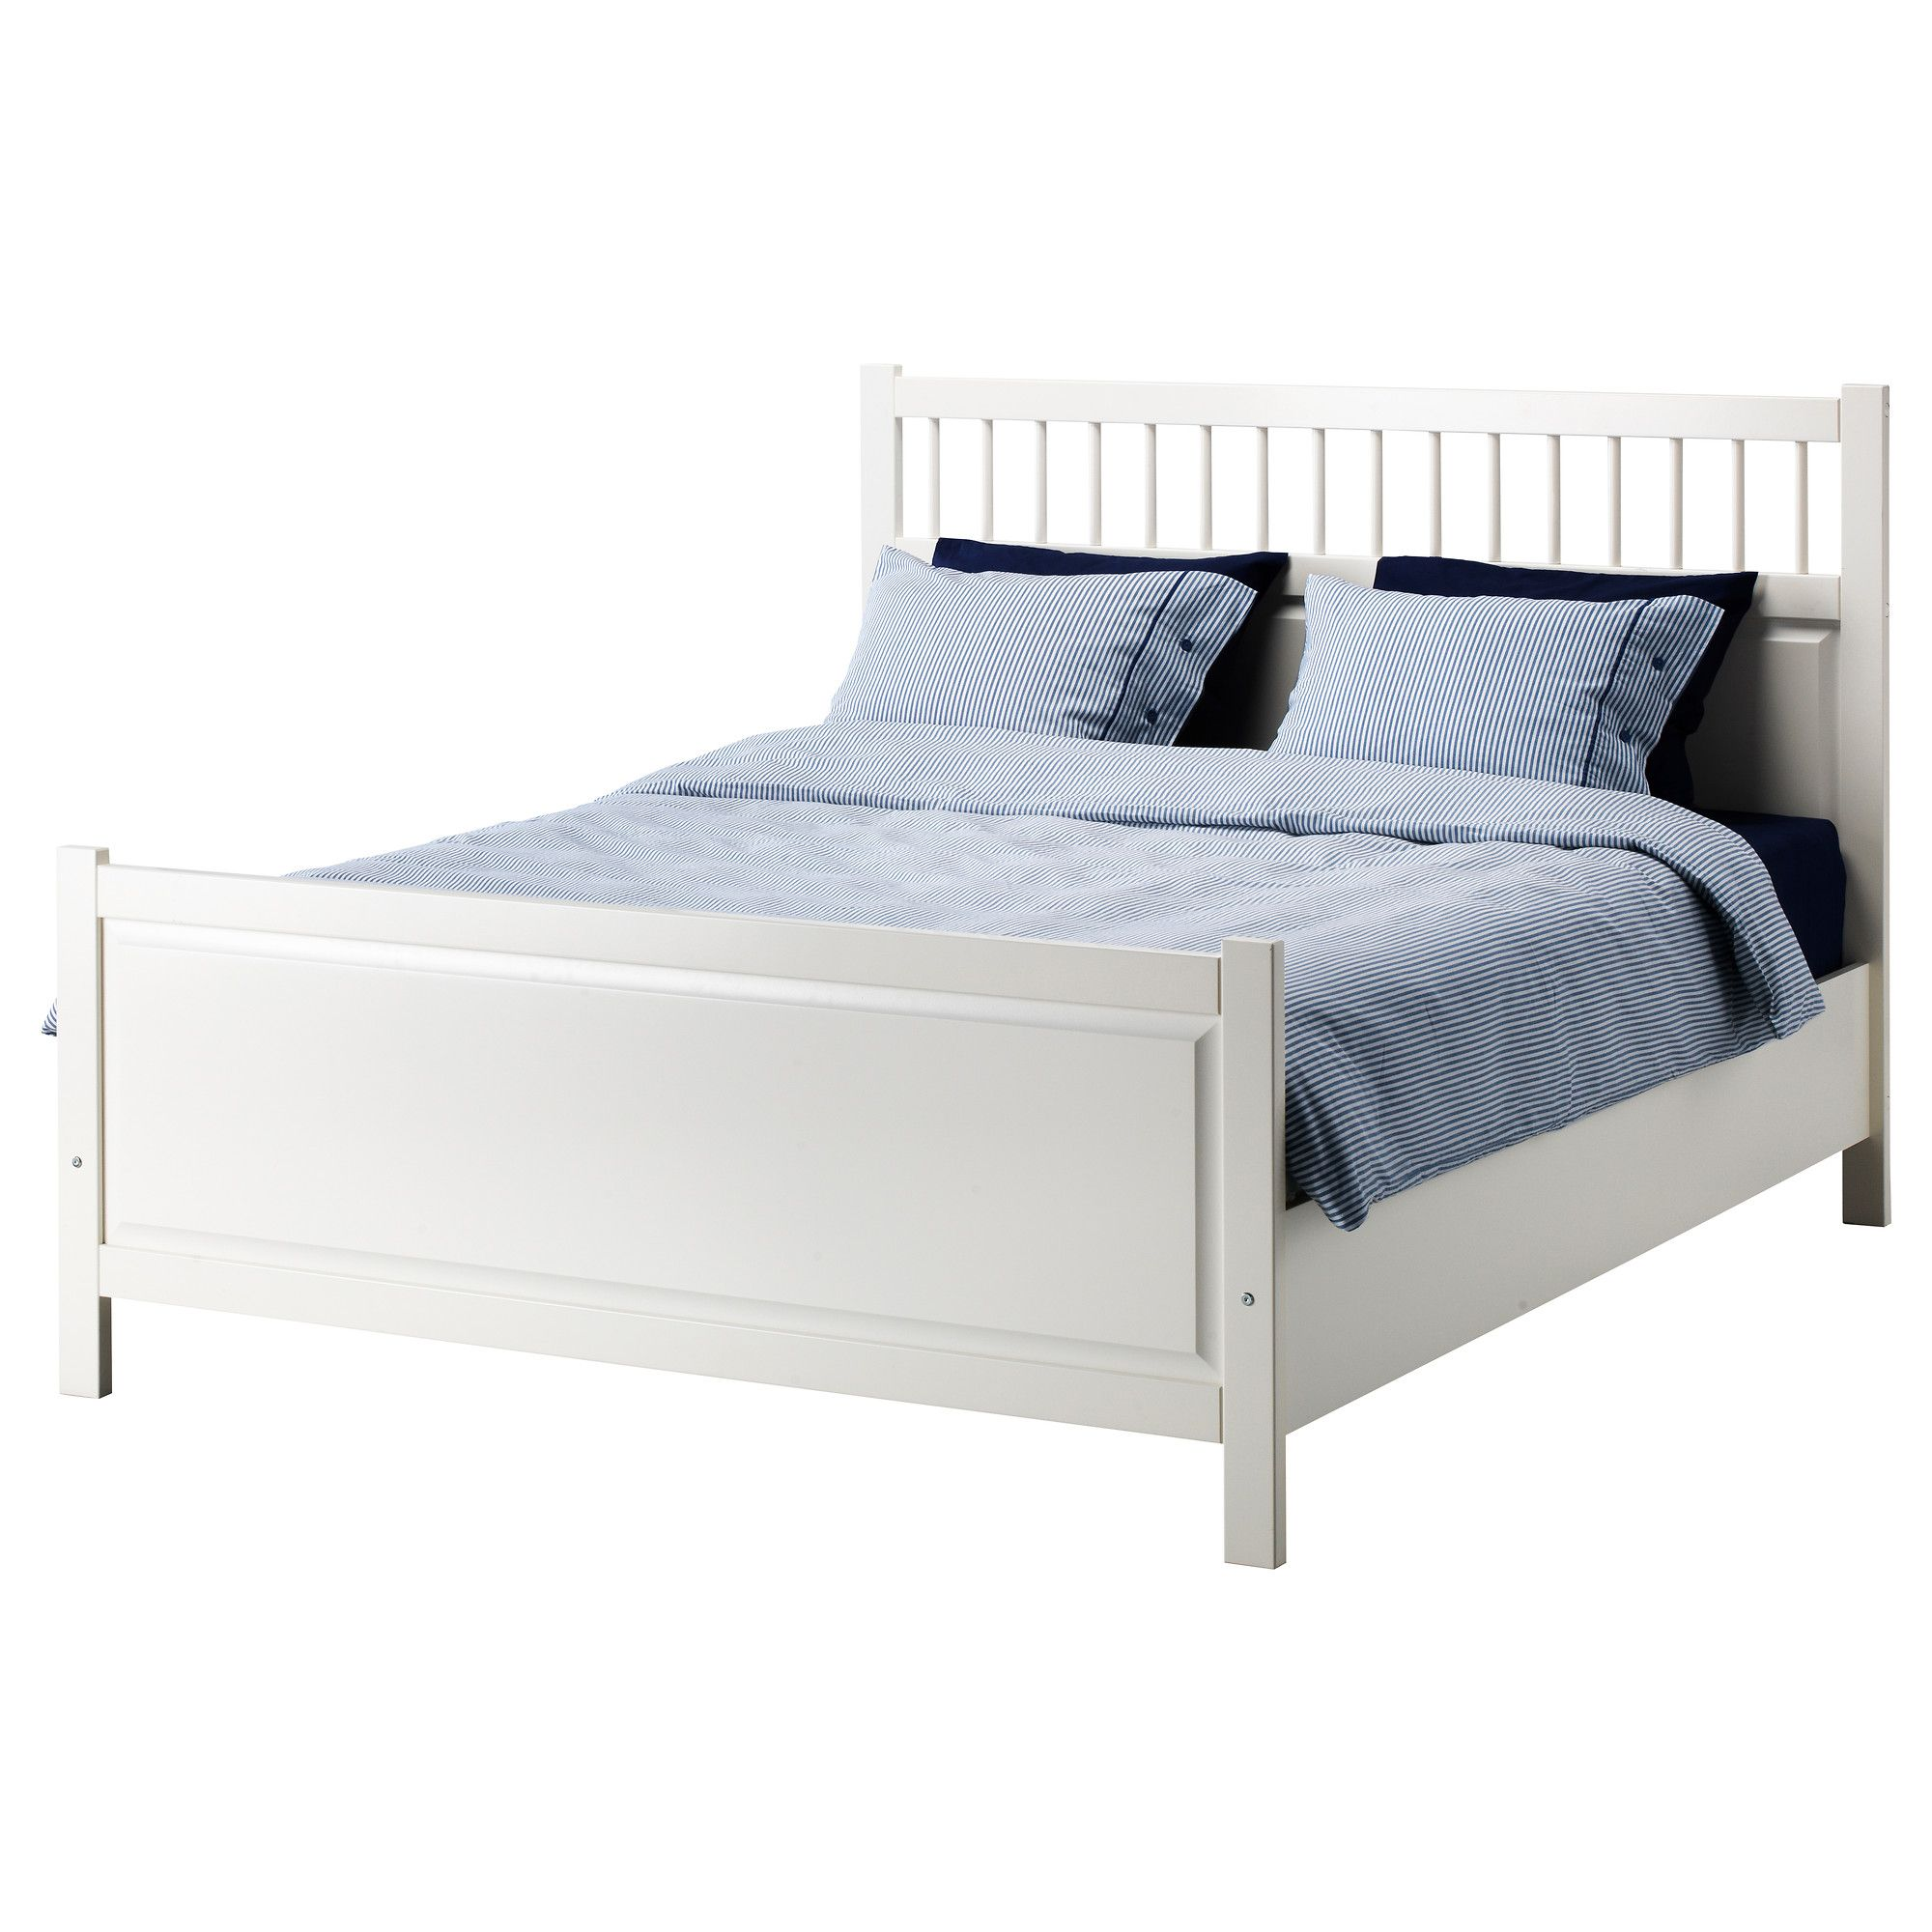 Ikea Us Furniture And Home Furnishings Ikea Bed Frames Ikea